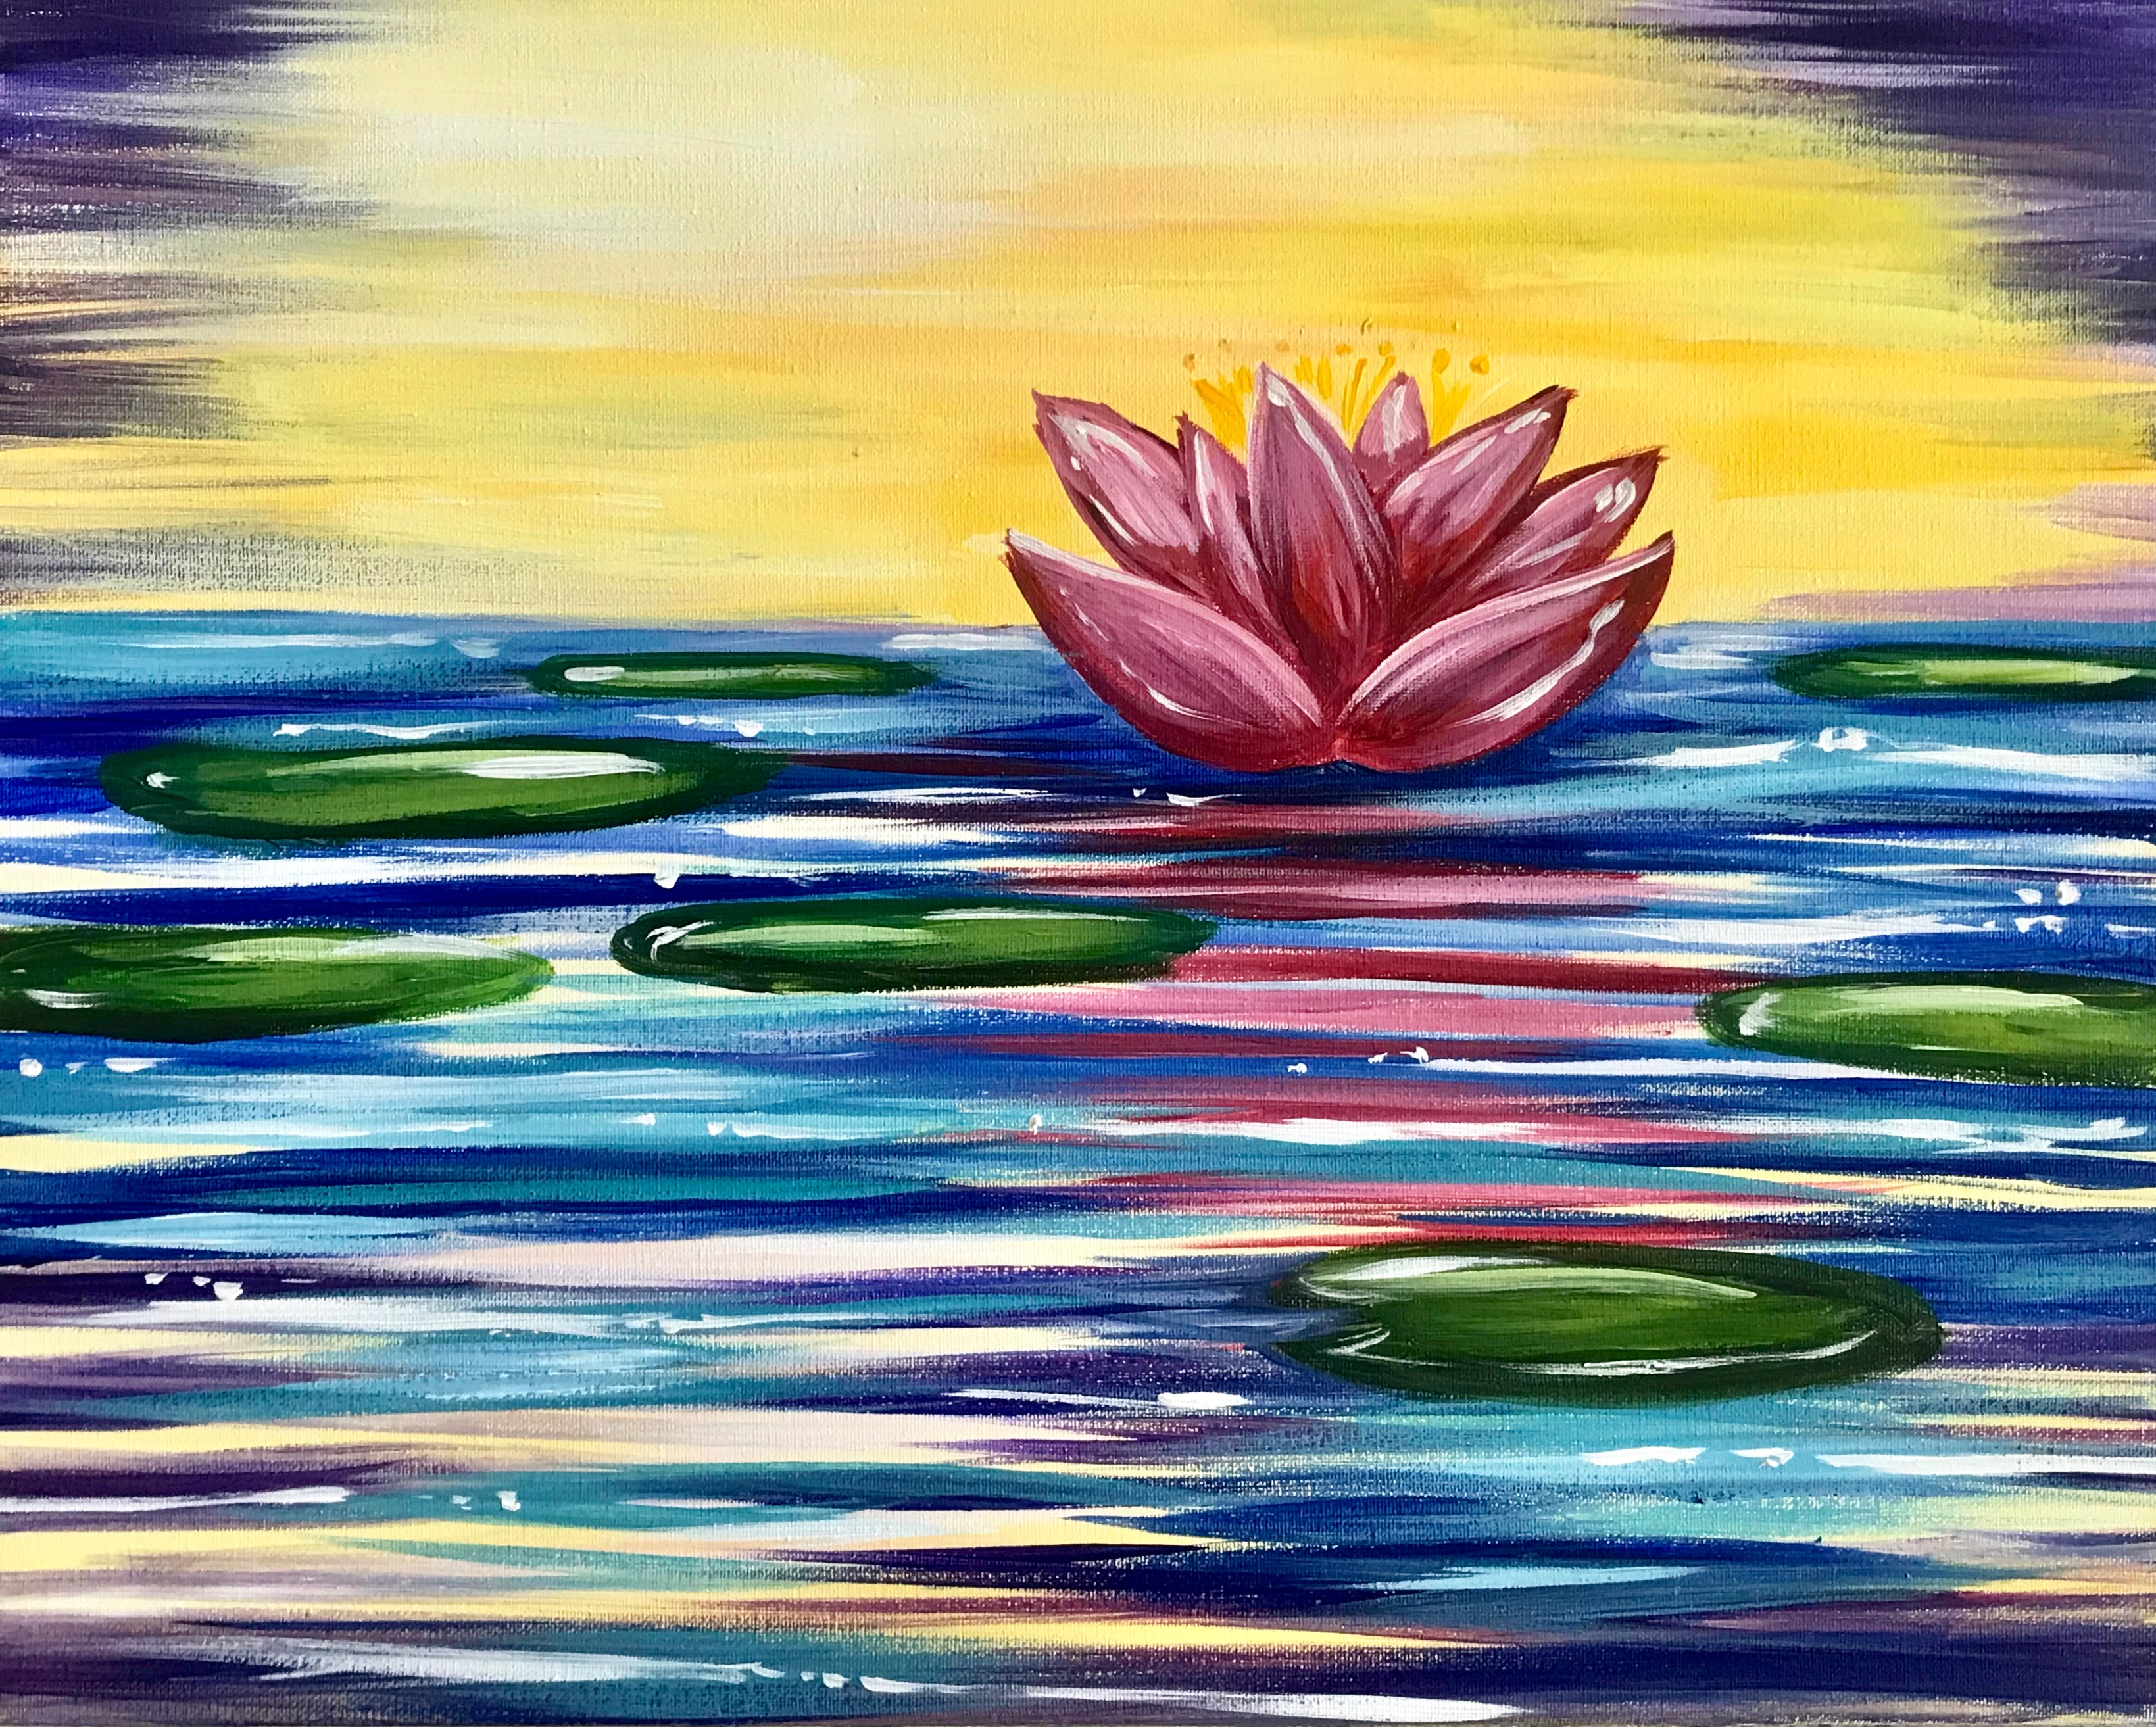 Lily Pond - The Painters Lounge - Best paint and wine, paint and sip in